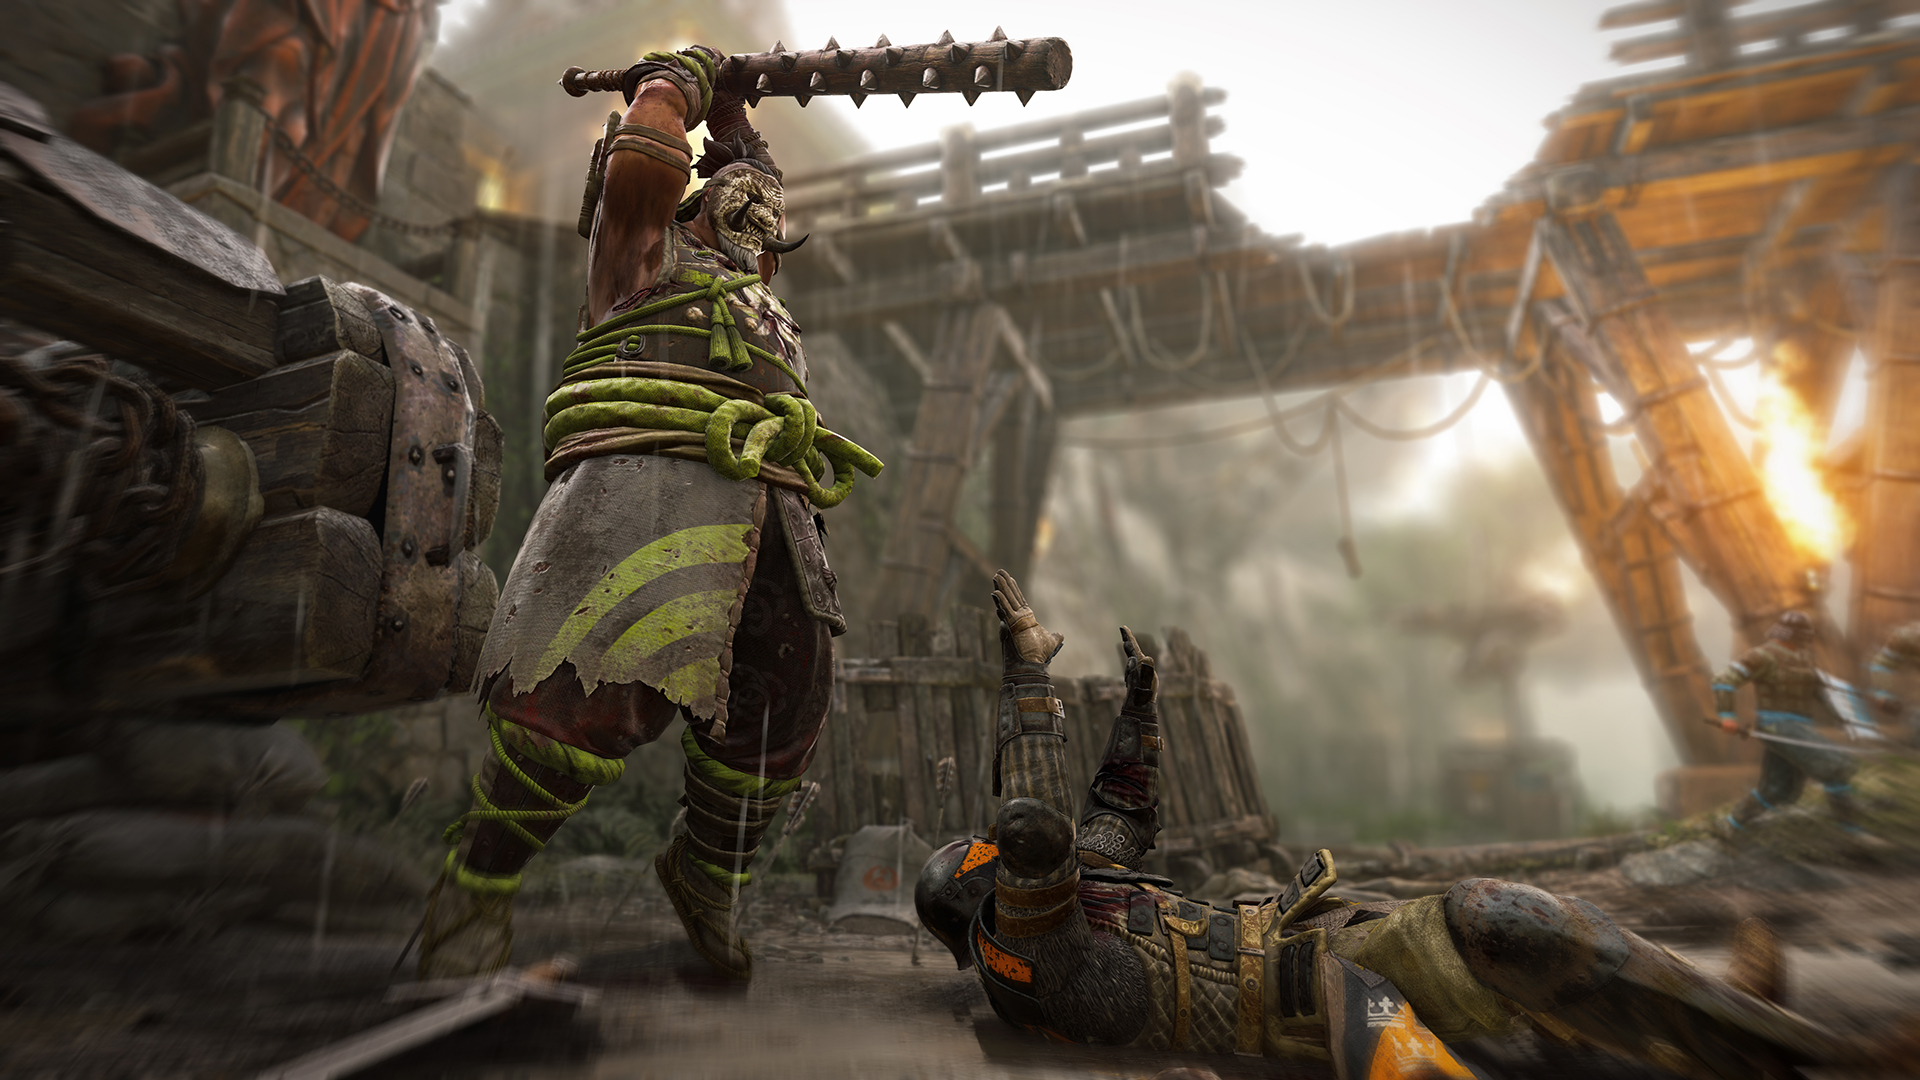 For honor matchmaking balance - Find for honor pc matchmaking taking.